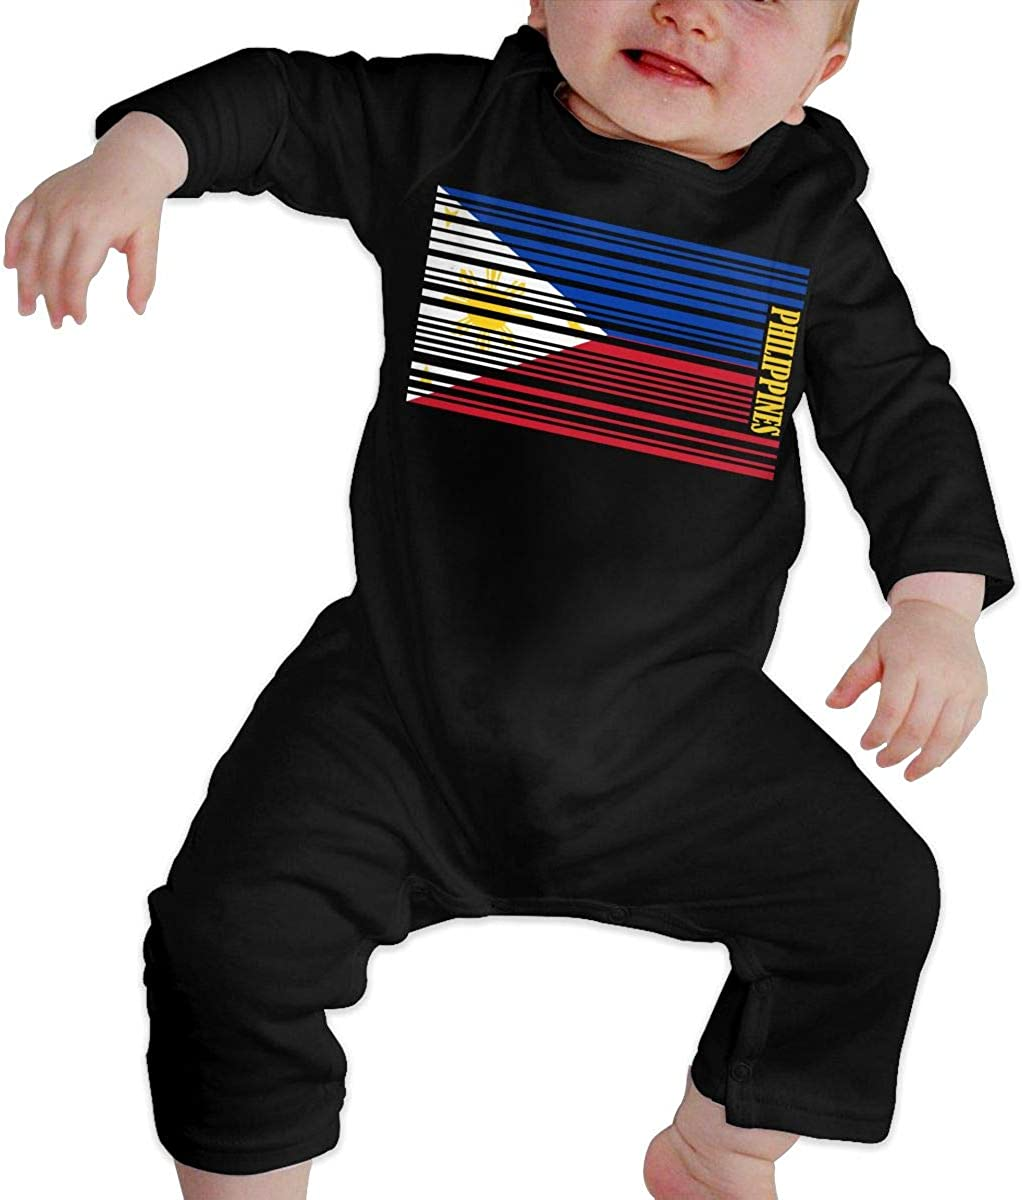 YELTY6F Philippines Barcode Flag Printed Newborn Baby Boy Girl Bodysuit Long Sleeve Pajamas Black